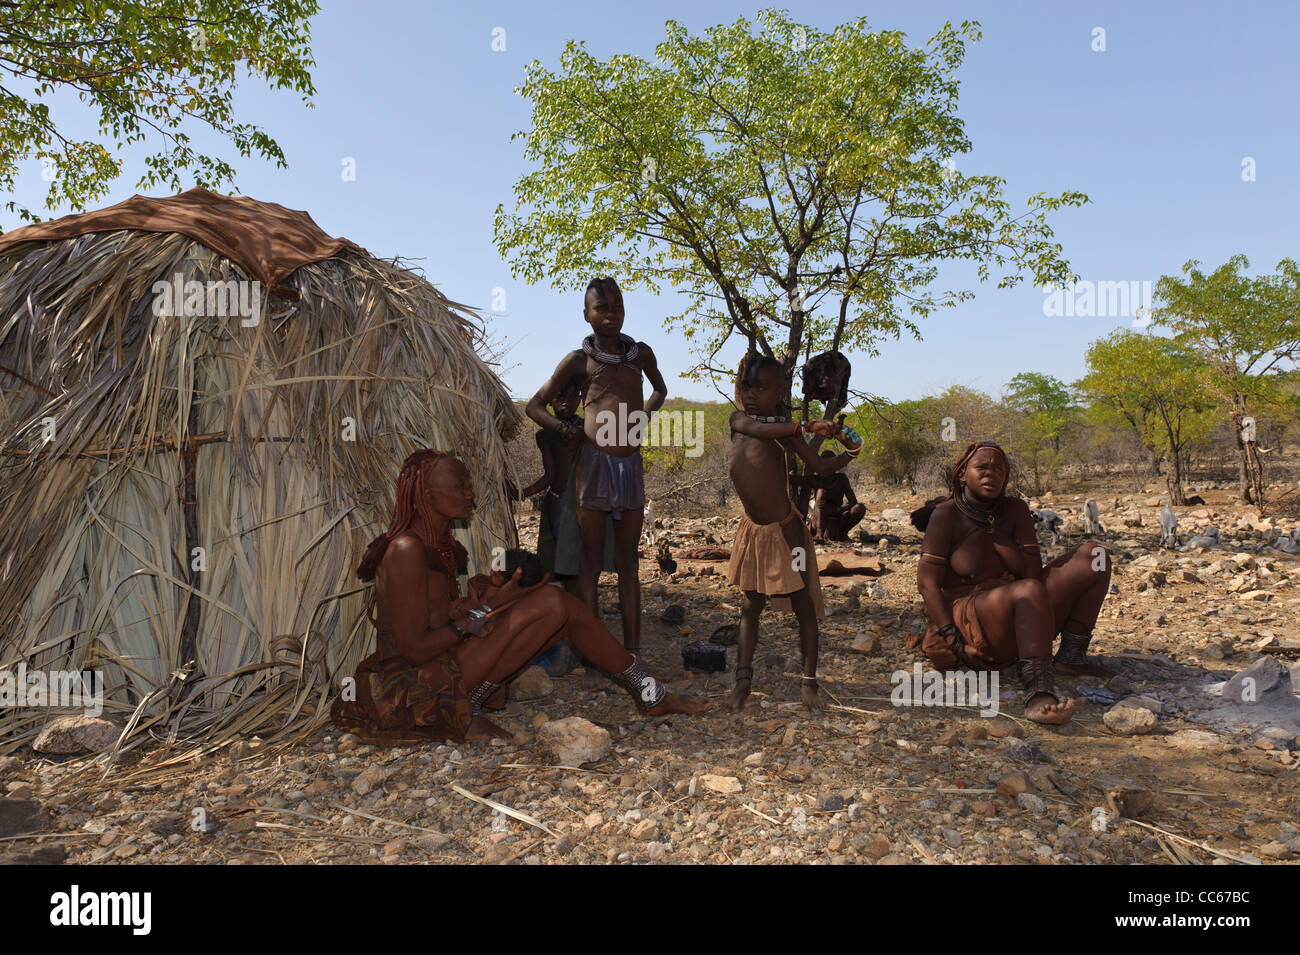 Himba villagers near the Kunene River, the border between Angola and Namibia. Kaokoland, Northern Namibia. - Stock Image